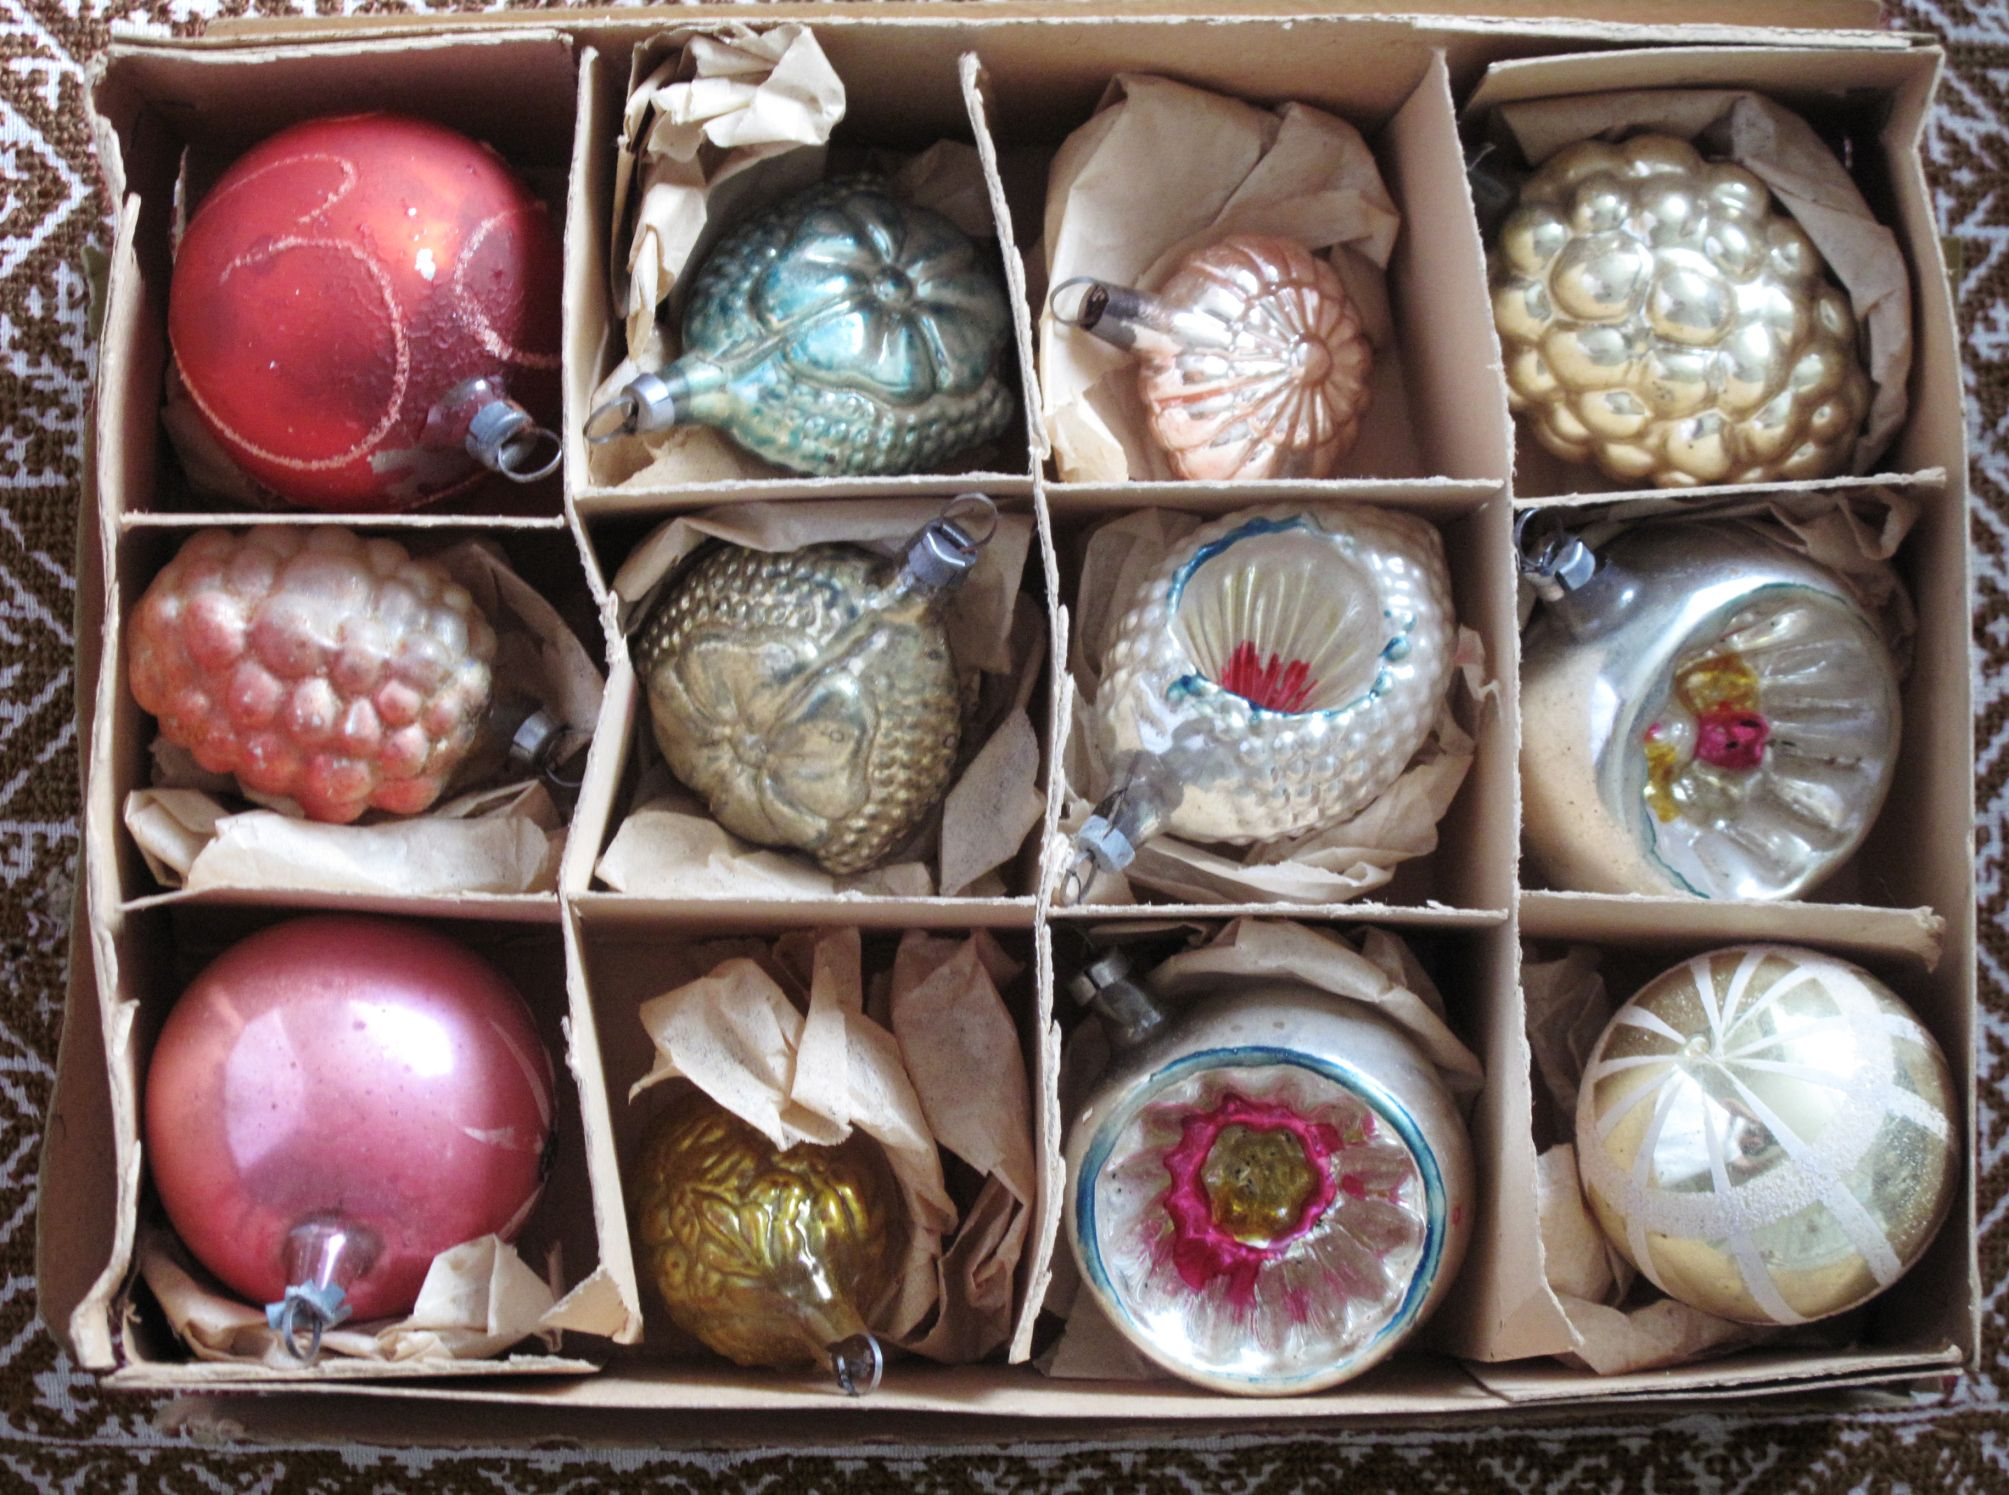 18 Vintage Christmas Decorations & Ornaments  Pictures Of Old Fashioned Christmas  Ornaments